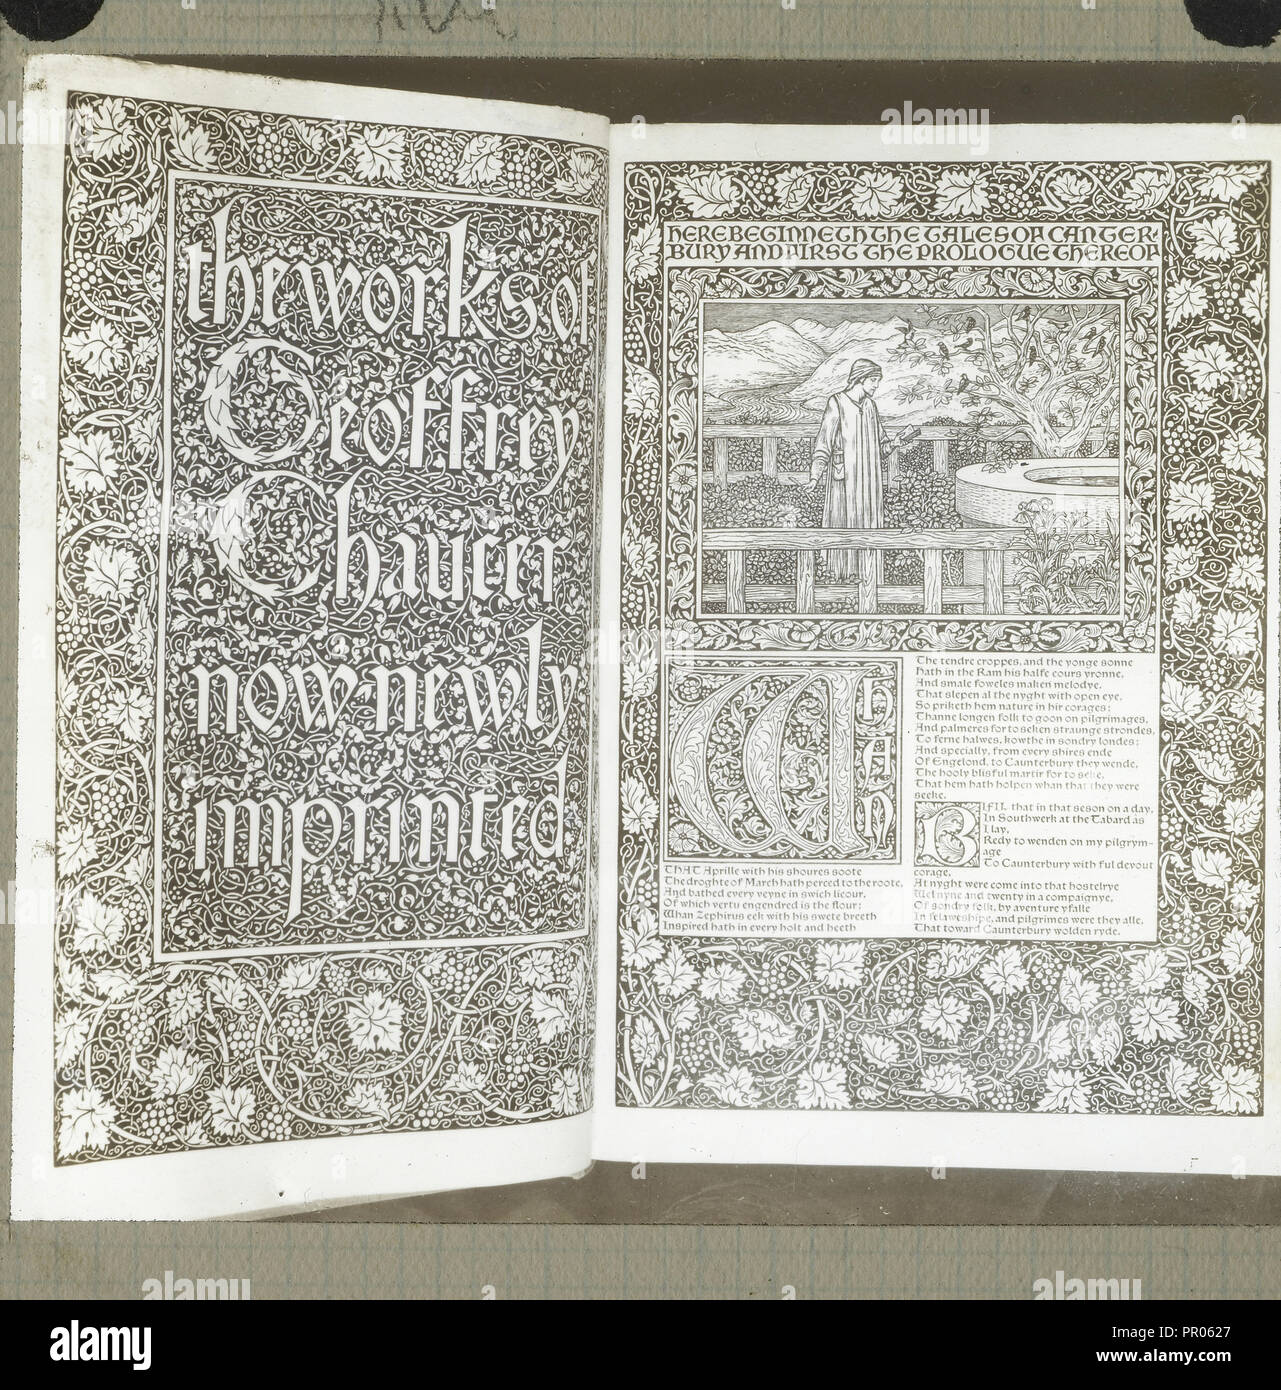 Title page and first page of  The Works of Geoffrey Chaucer; Frederick H. Evans, British, 1853 - 1943, 1890 - 1899; Lantern - Stock Image